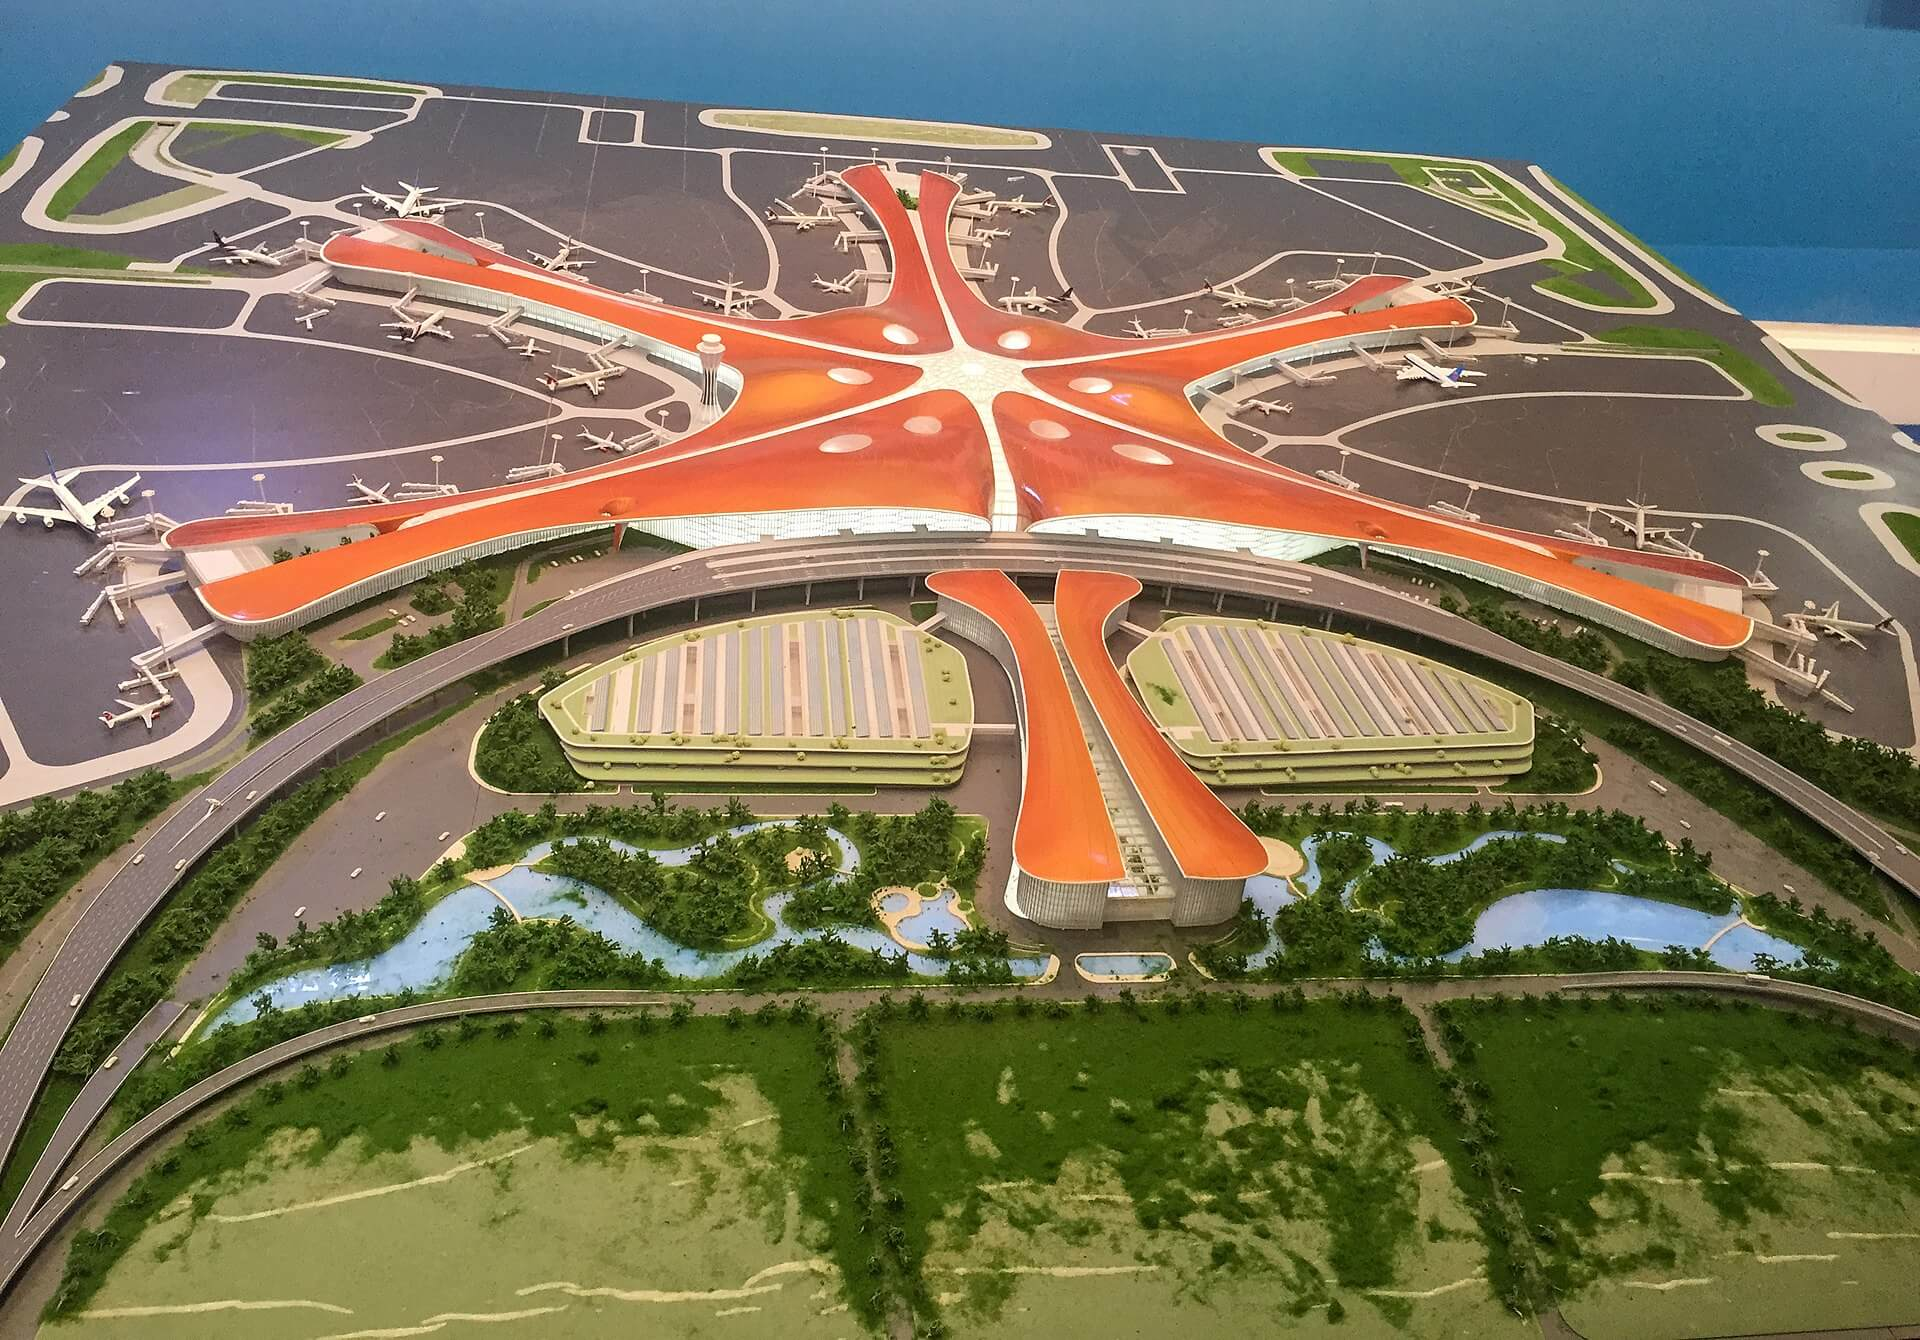 1920px-Model_of_Beijing_New_Airport_at_the_Five-Year_Achievement_Exhibition_20171015150600